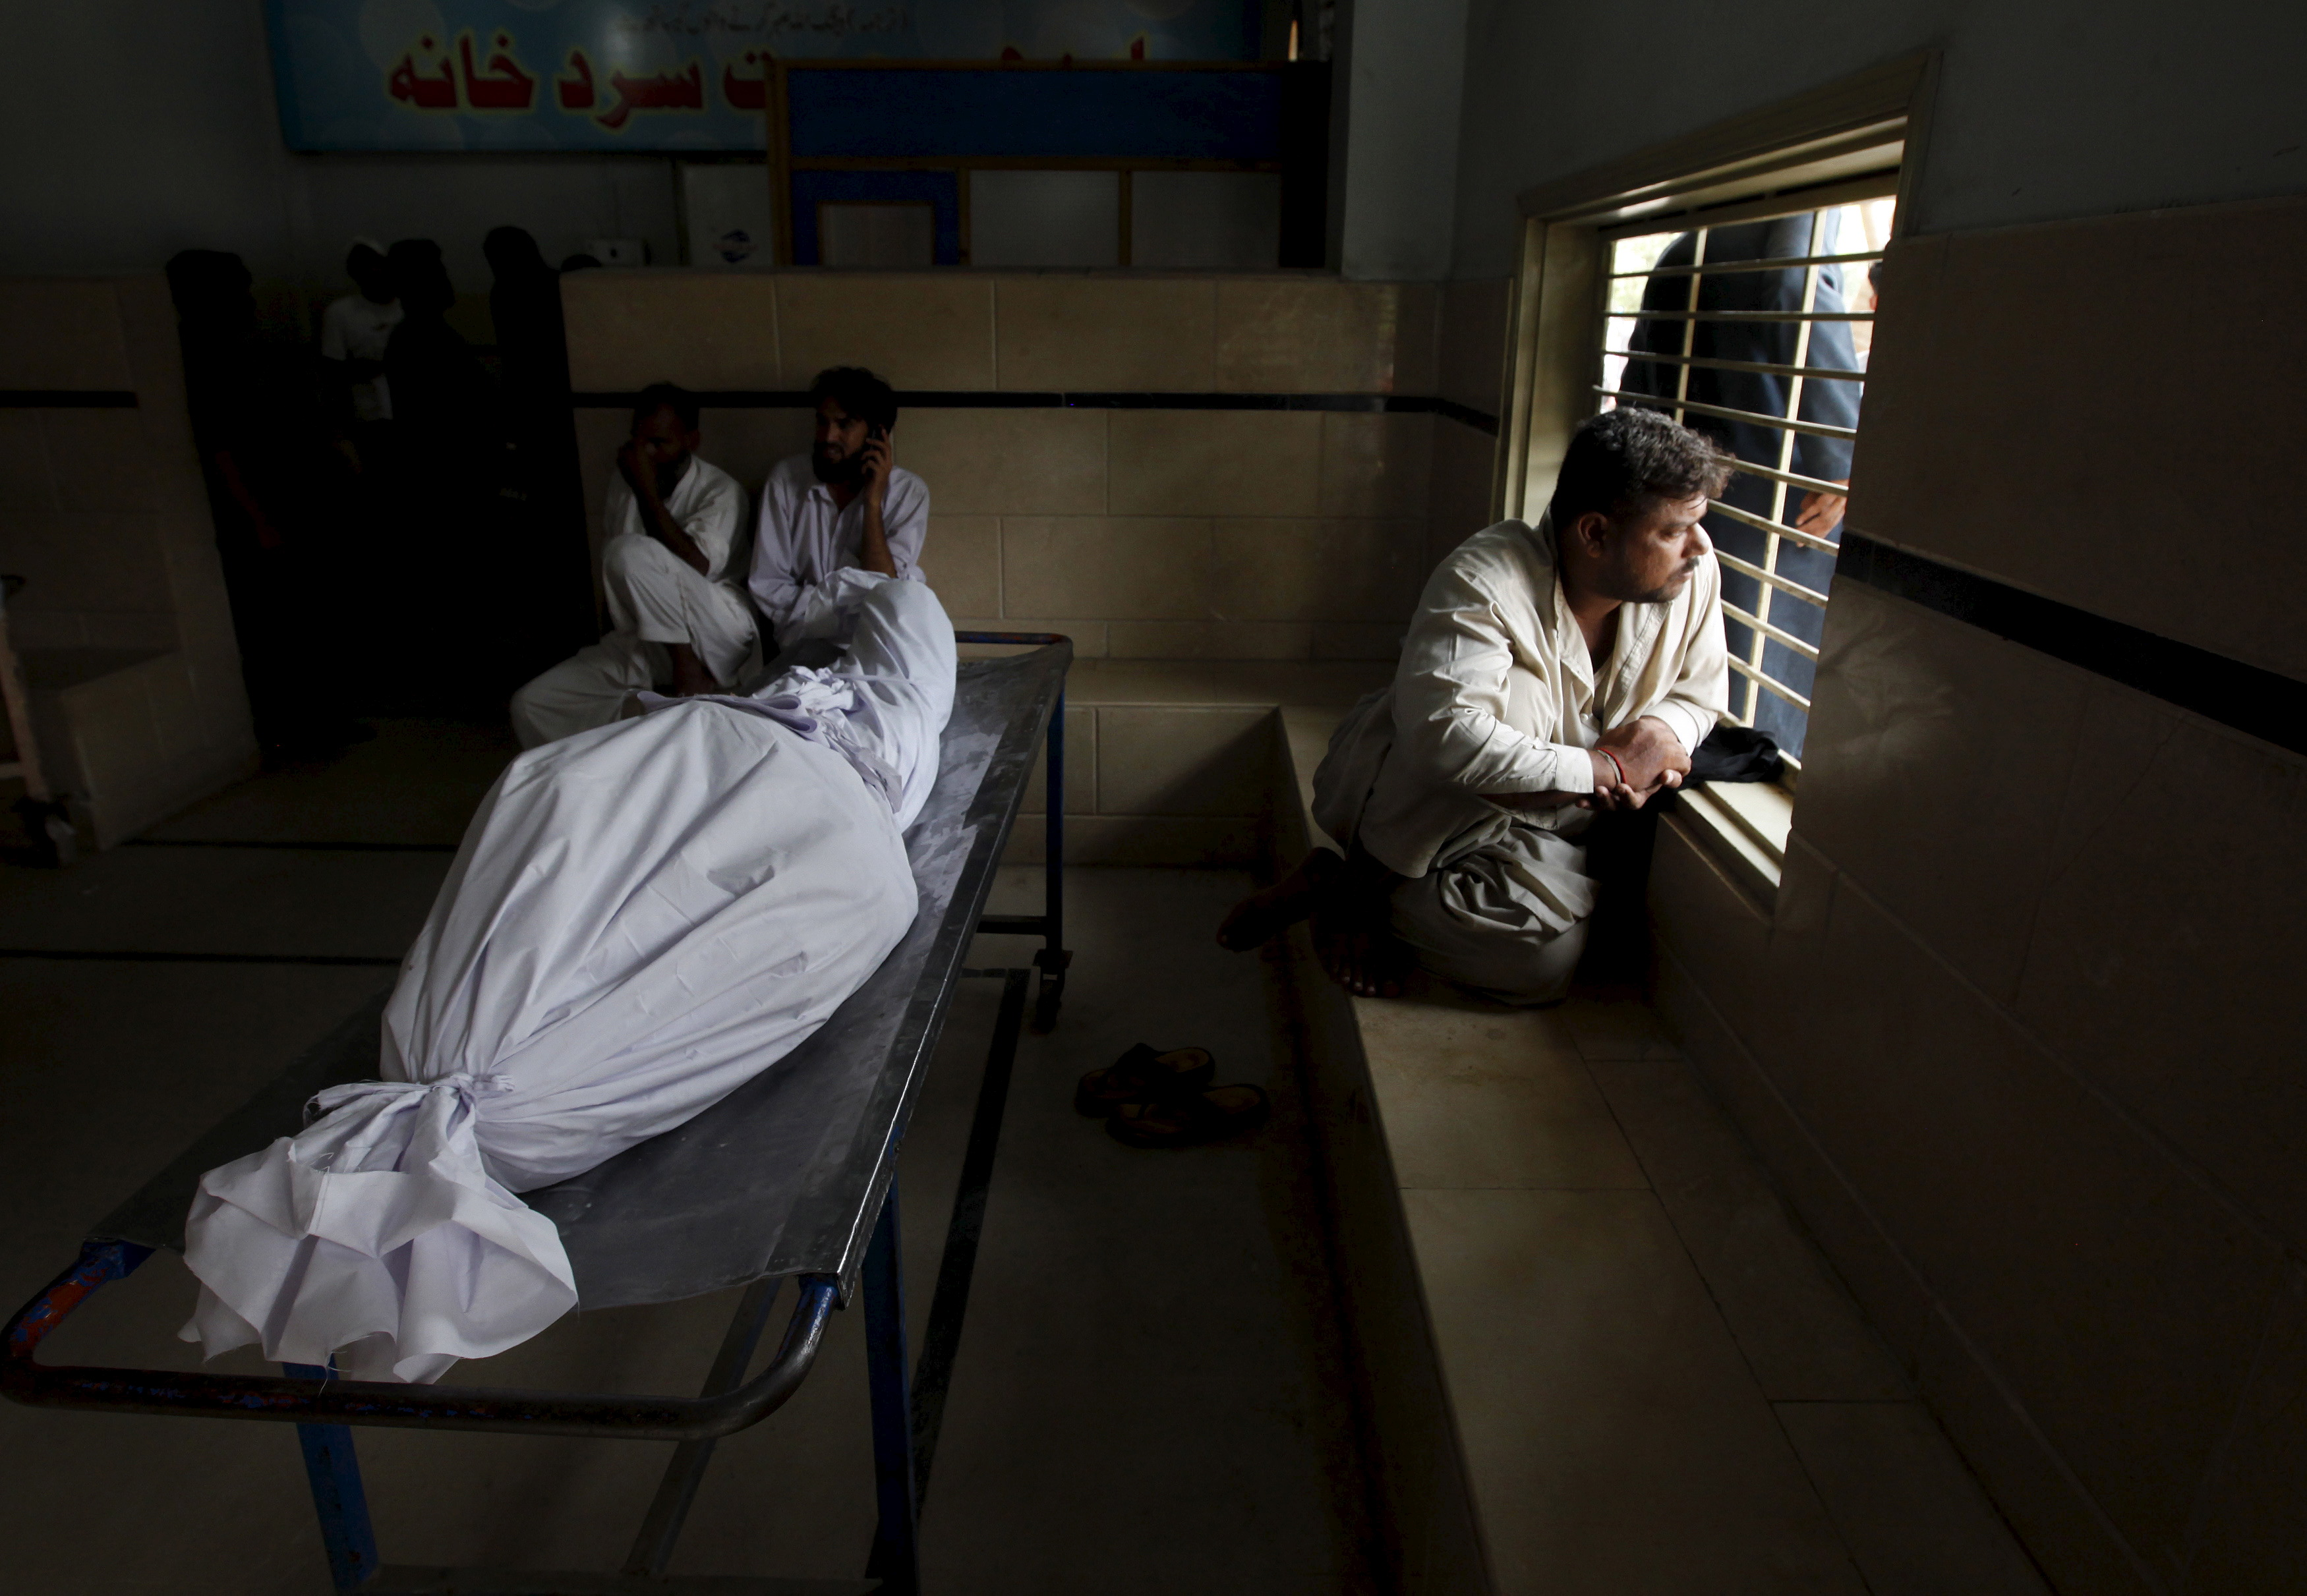 Relatives sit beside the body of someone who died due to an intense heat wave in Karachi, Pakistan on June 22. Photo by Akhtar Soomro/Reuters